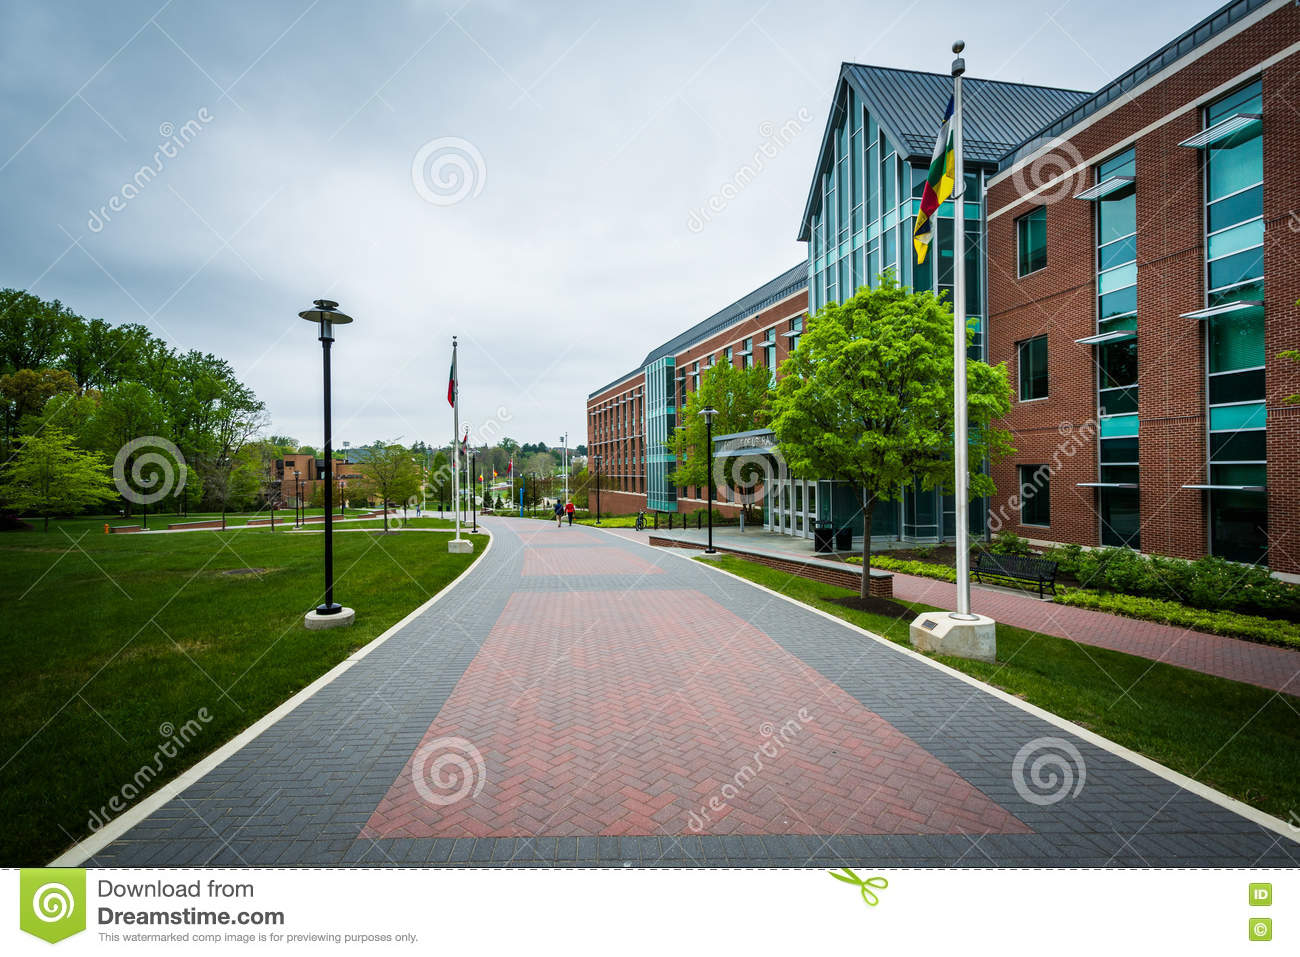 Walkway and the College of Liberal Arts, at Towson University, i